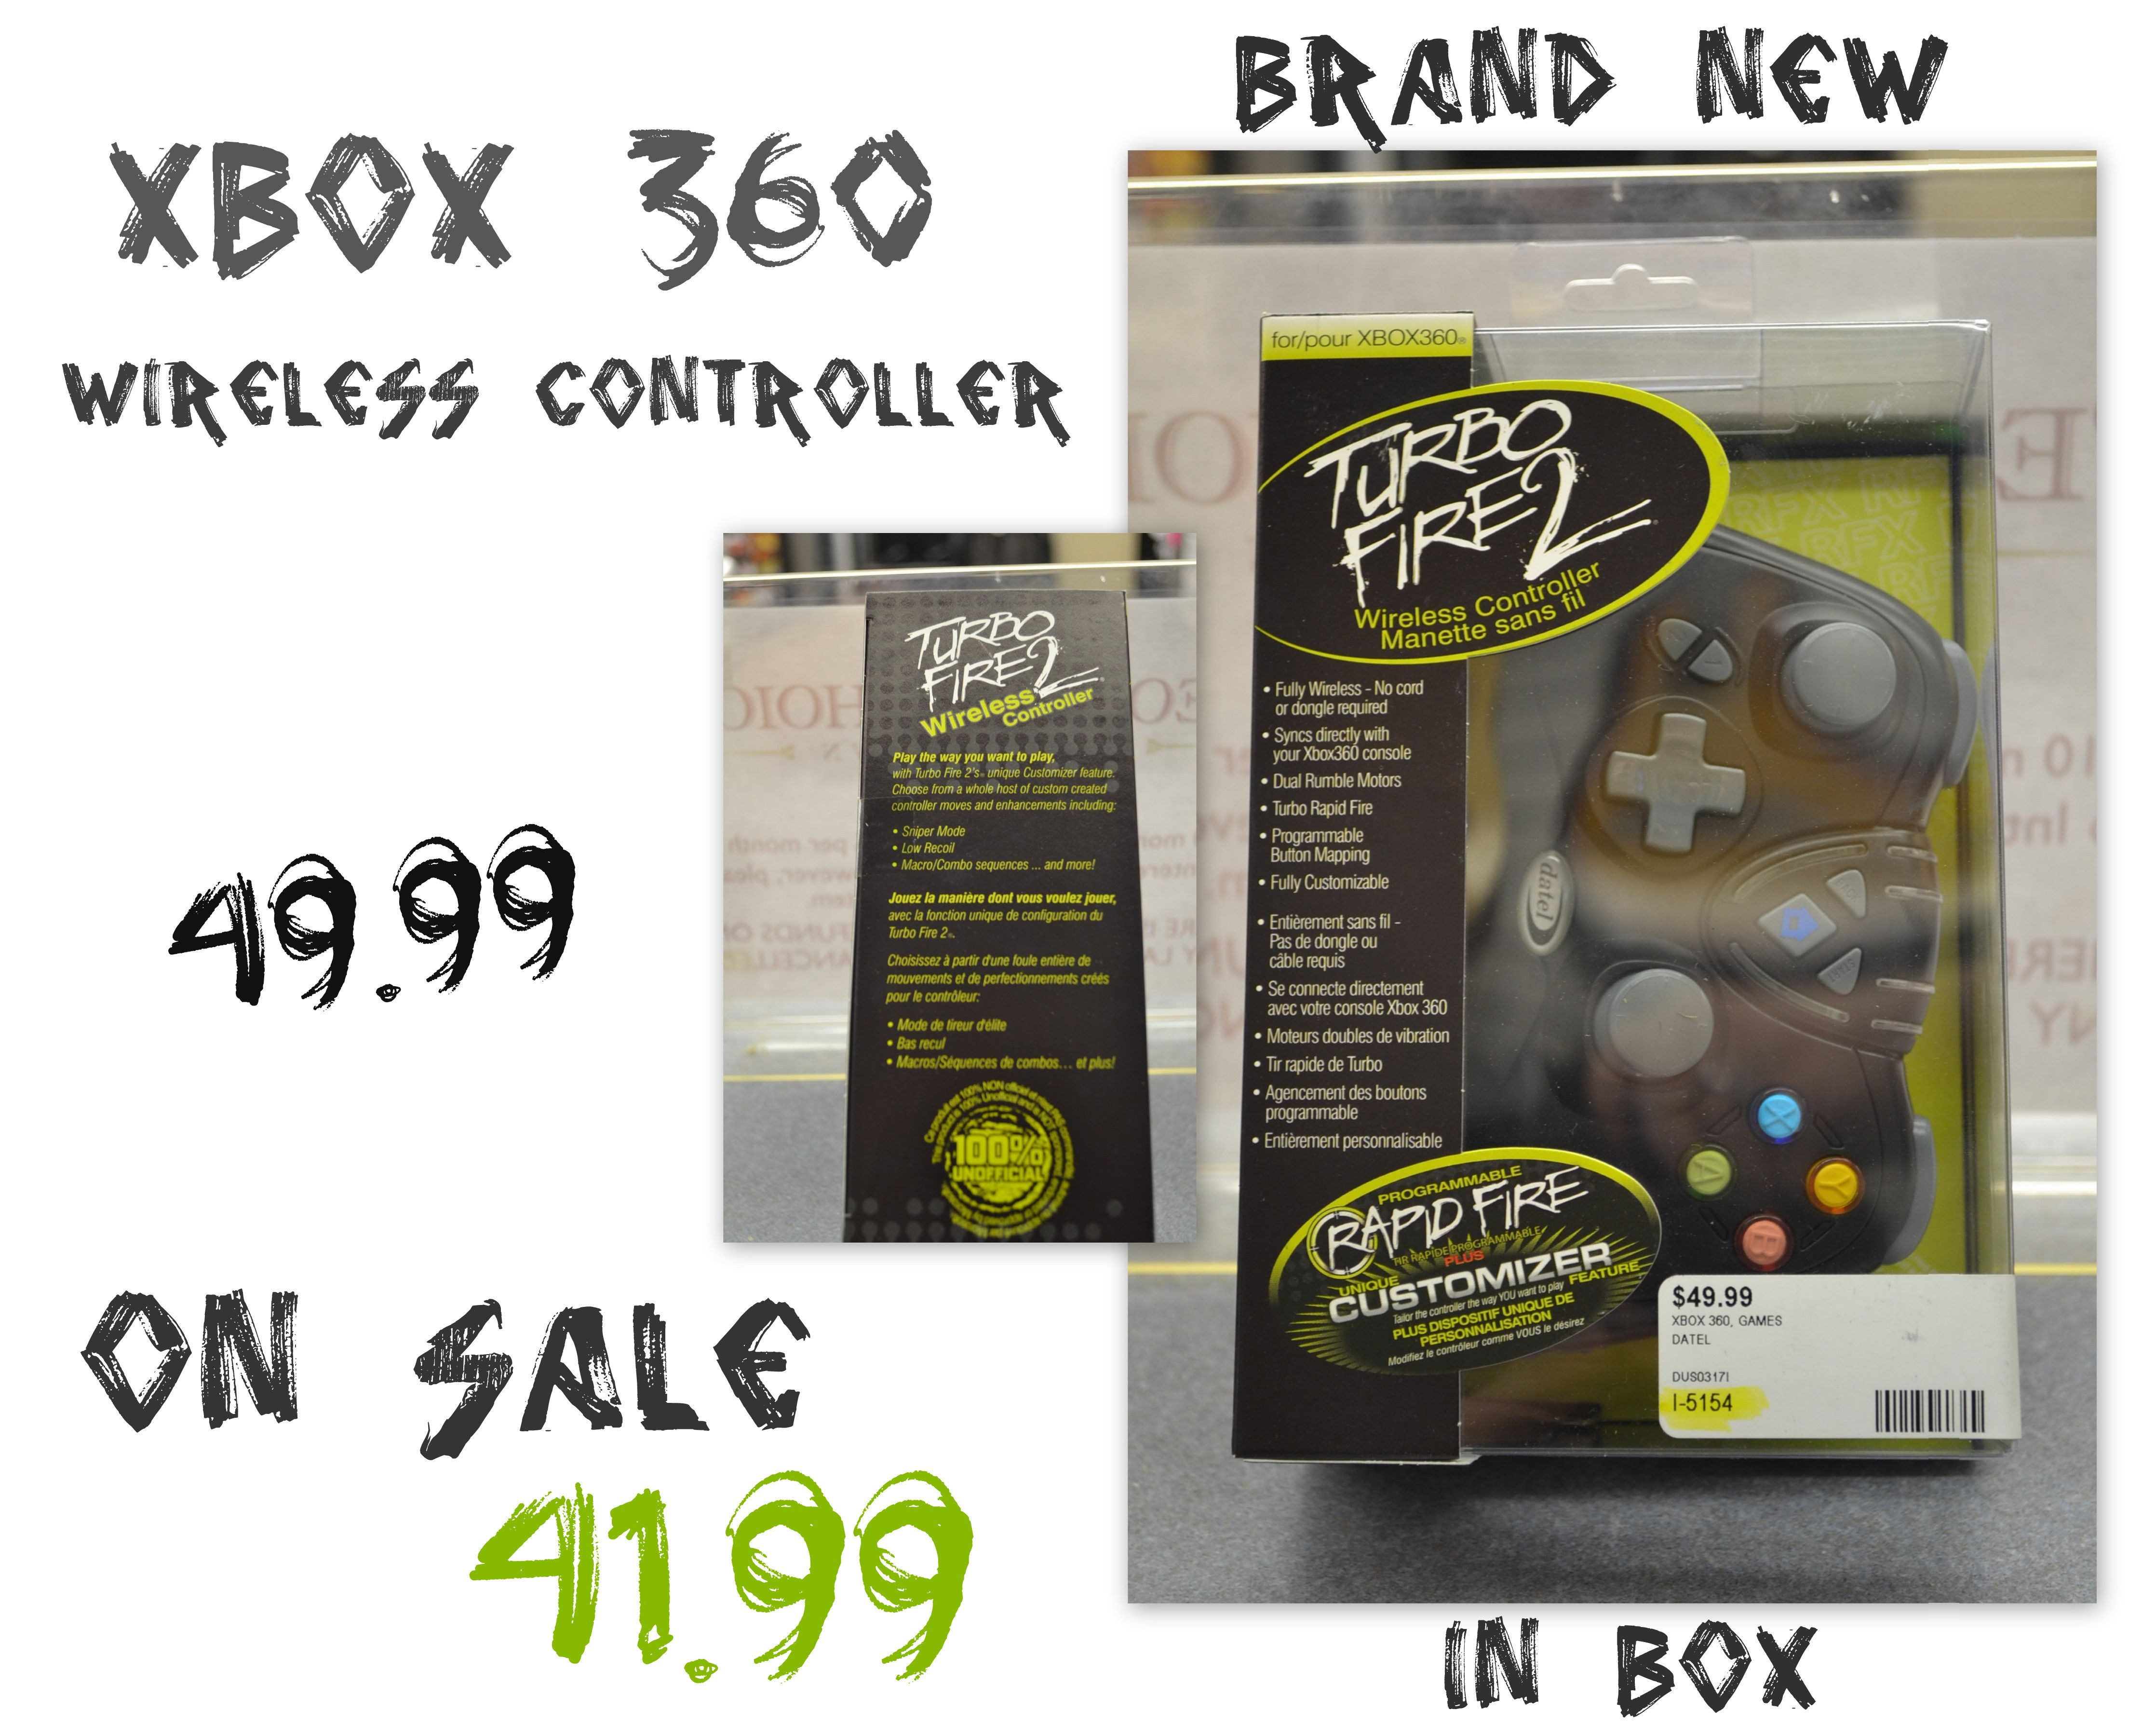 People's Choice Cash and Pawn/Electronics ..Brand New In The Box Xbox 360 Wireless Controller that is normally 49.99 but just knocked it down in price for you @ 41.99. We can take payment over the phone & ship if needed